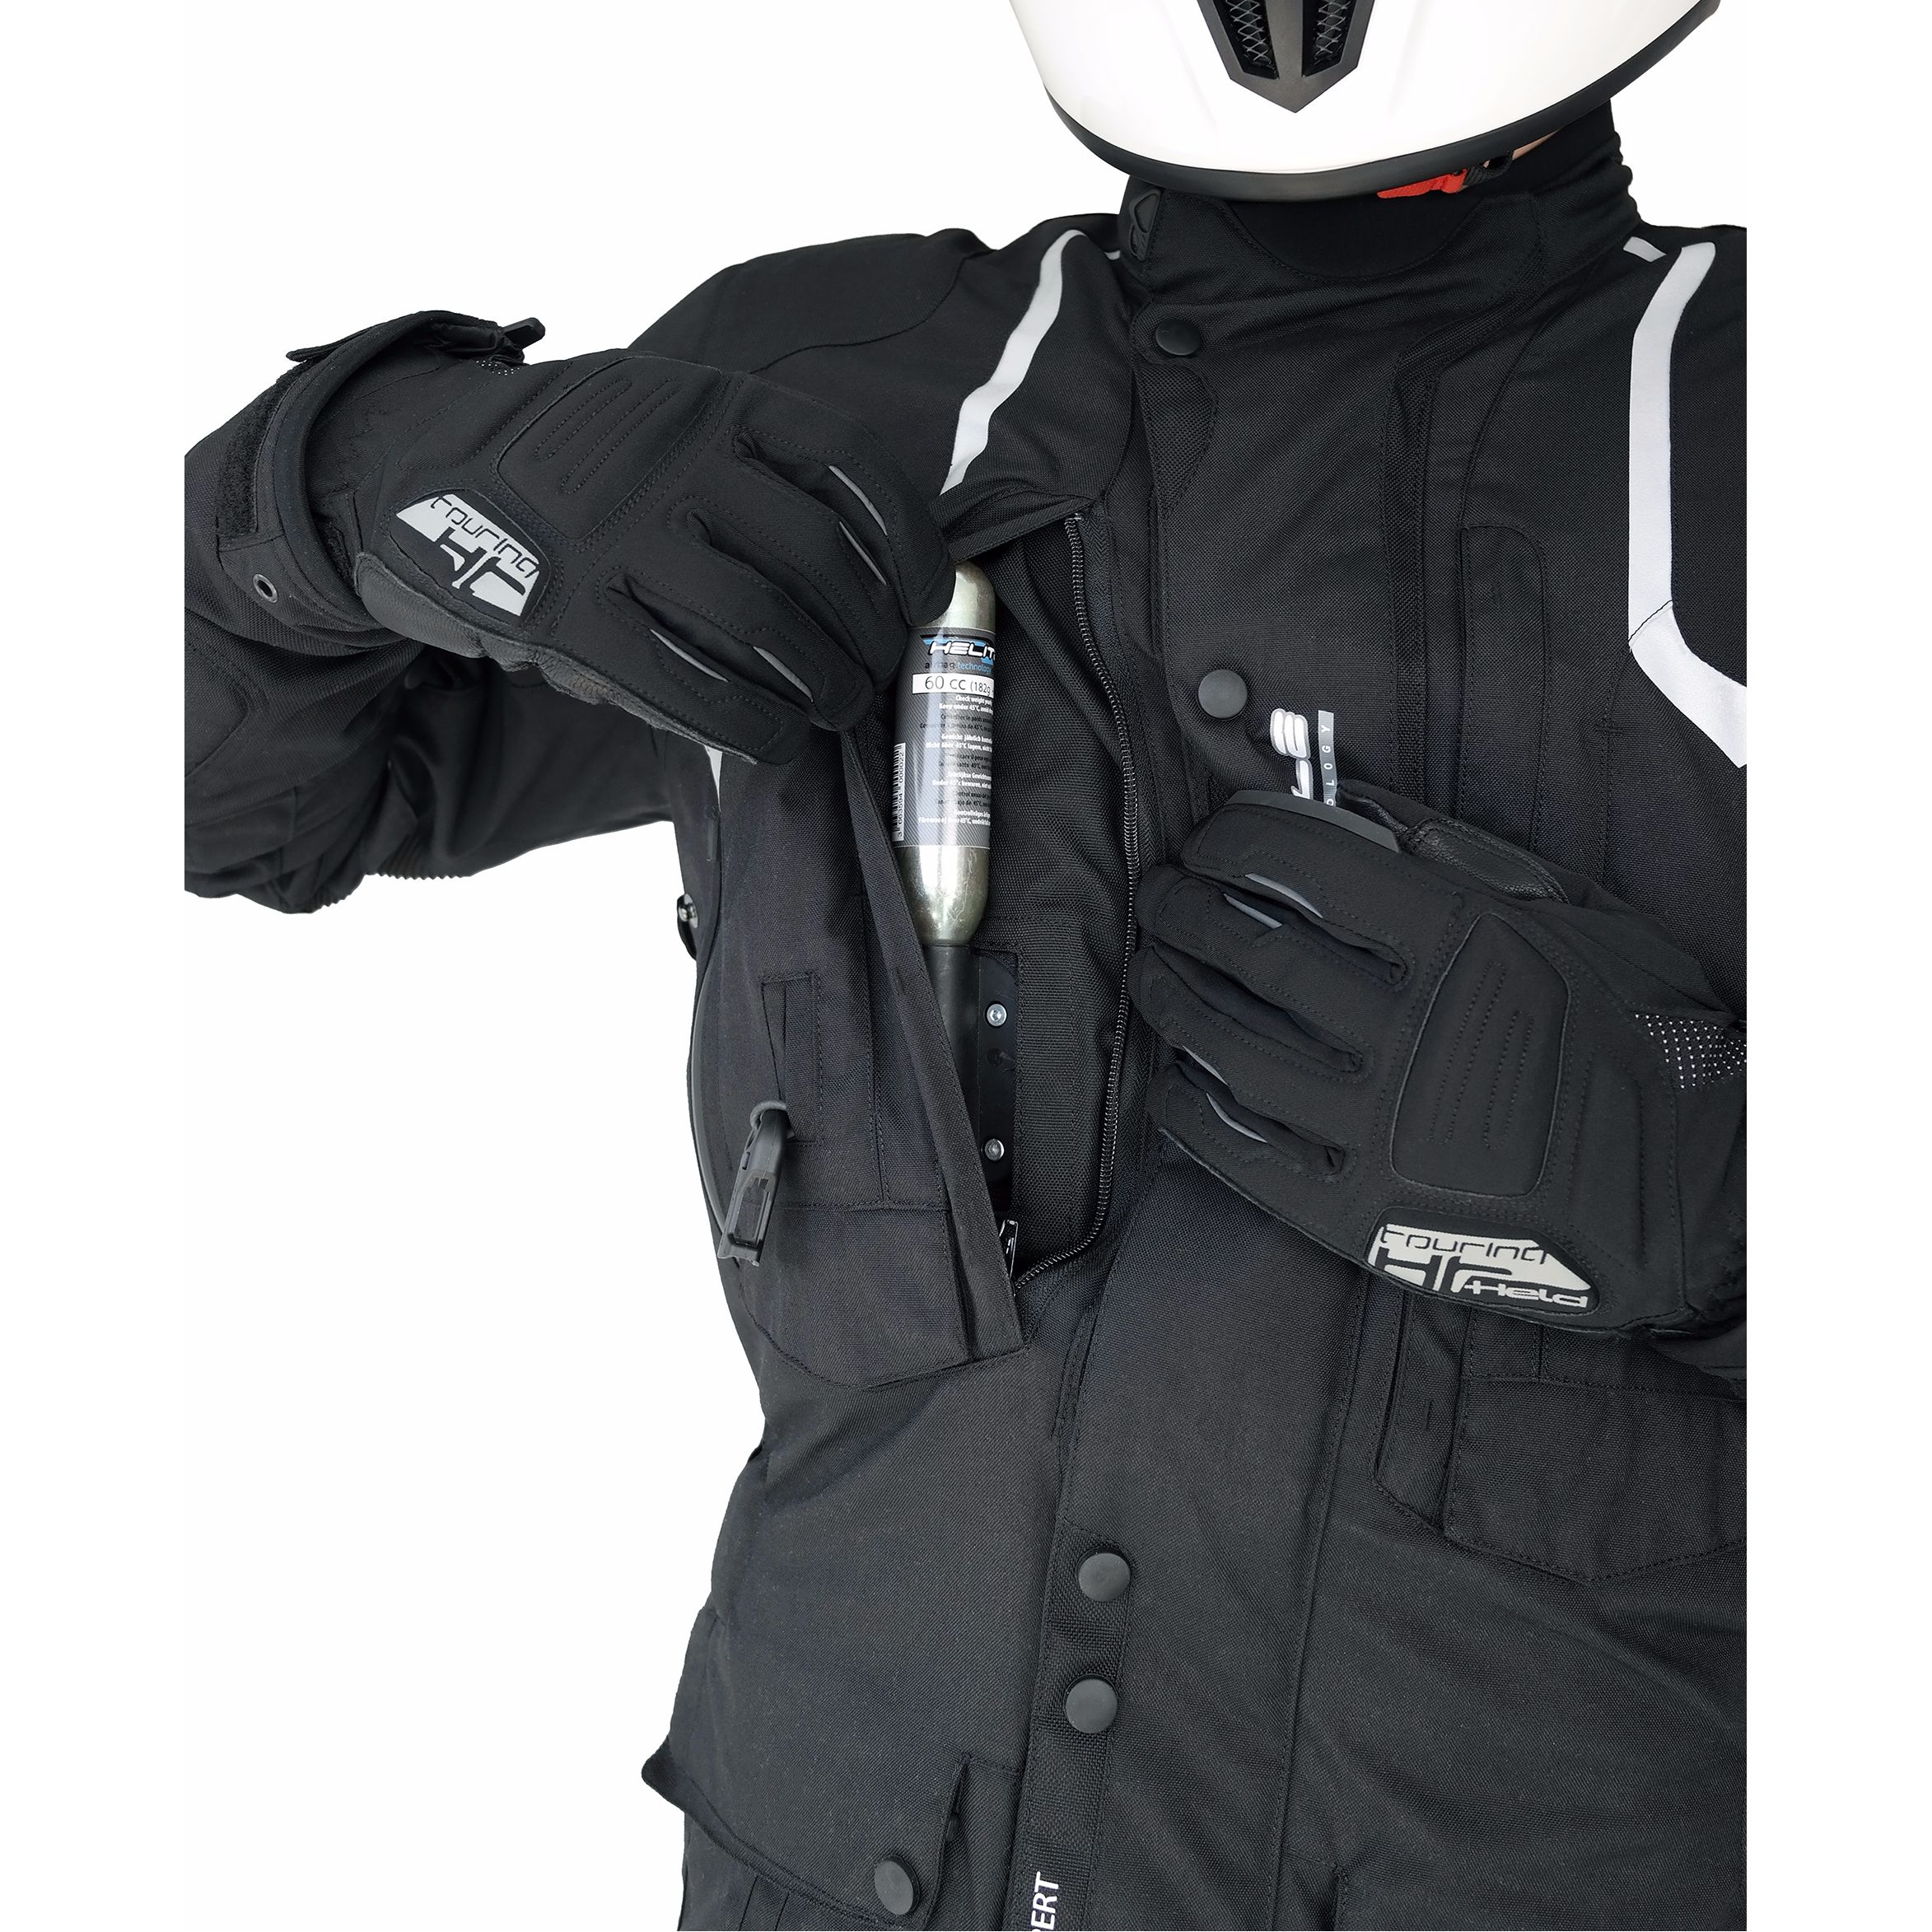 veste airbag helite touring 2 blouson et veste. Black Bedroom Furniture Sets. Home Design Ideas